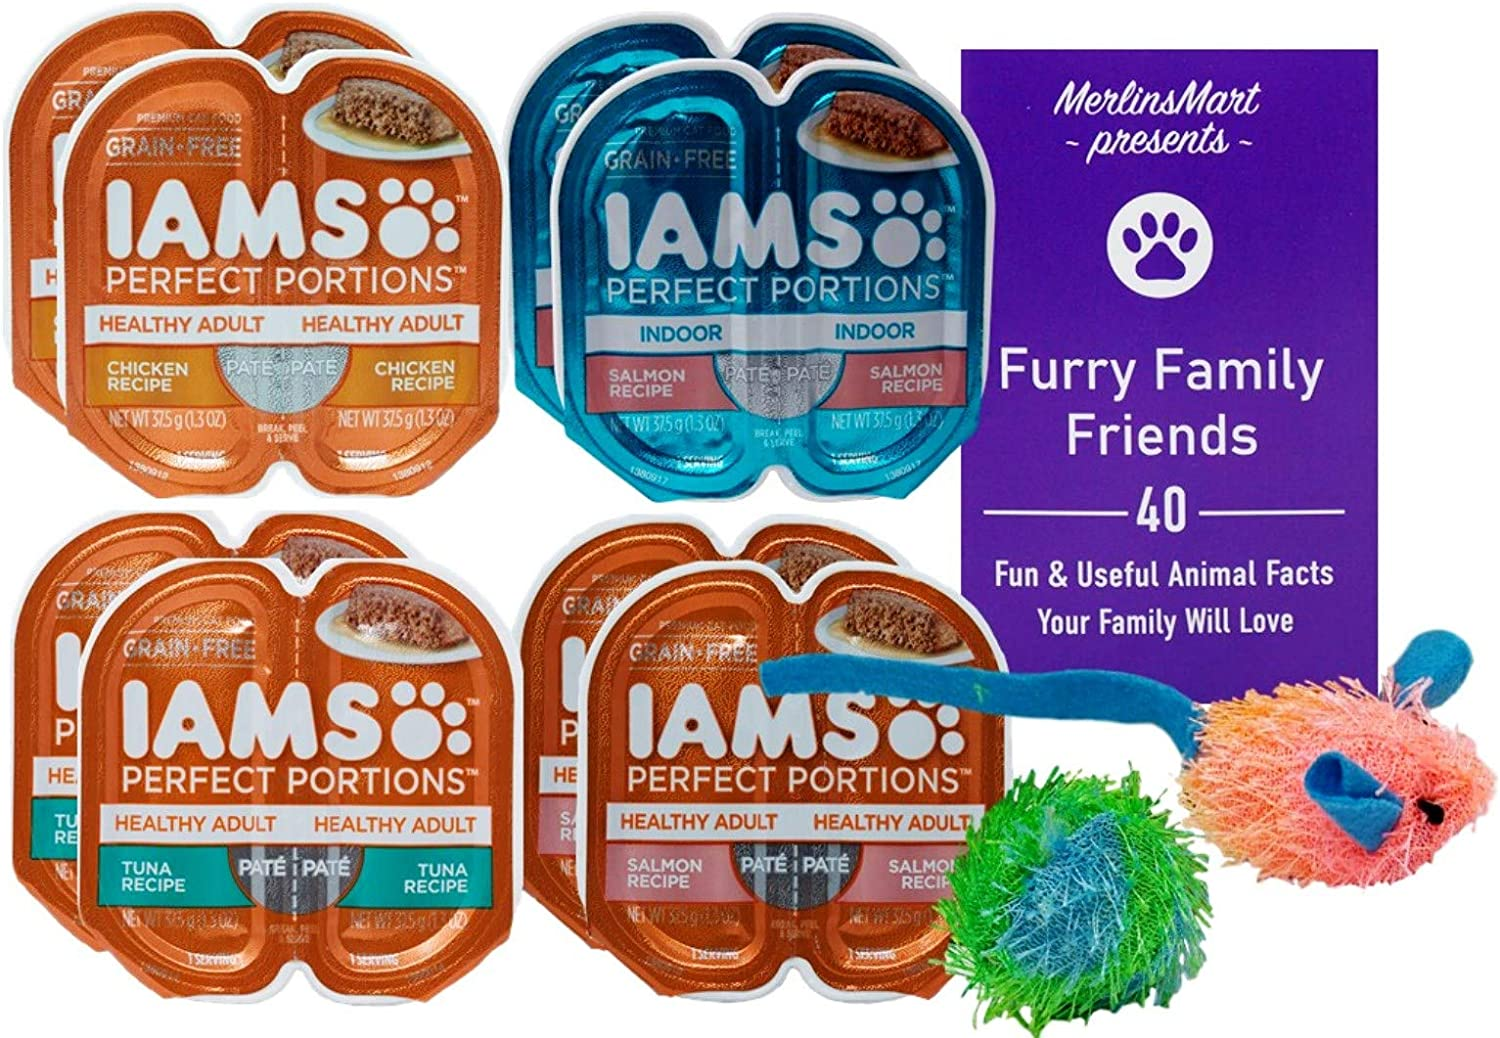 Iams Perfect Portions Grain Free Pate Cat Food 4 Flavor 8 Can Variety - (2) Each: Tuna, Chicken, Indoor Salmon, Salmon (2.6 Ounces) | Plus 2 Catnip Toys and Fun Animal Facts Booklet Bundle